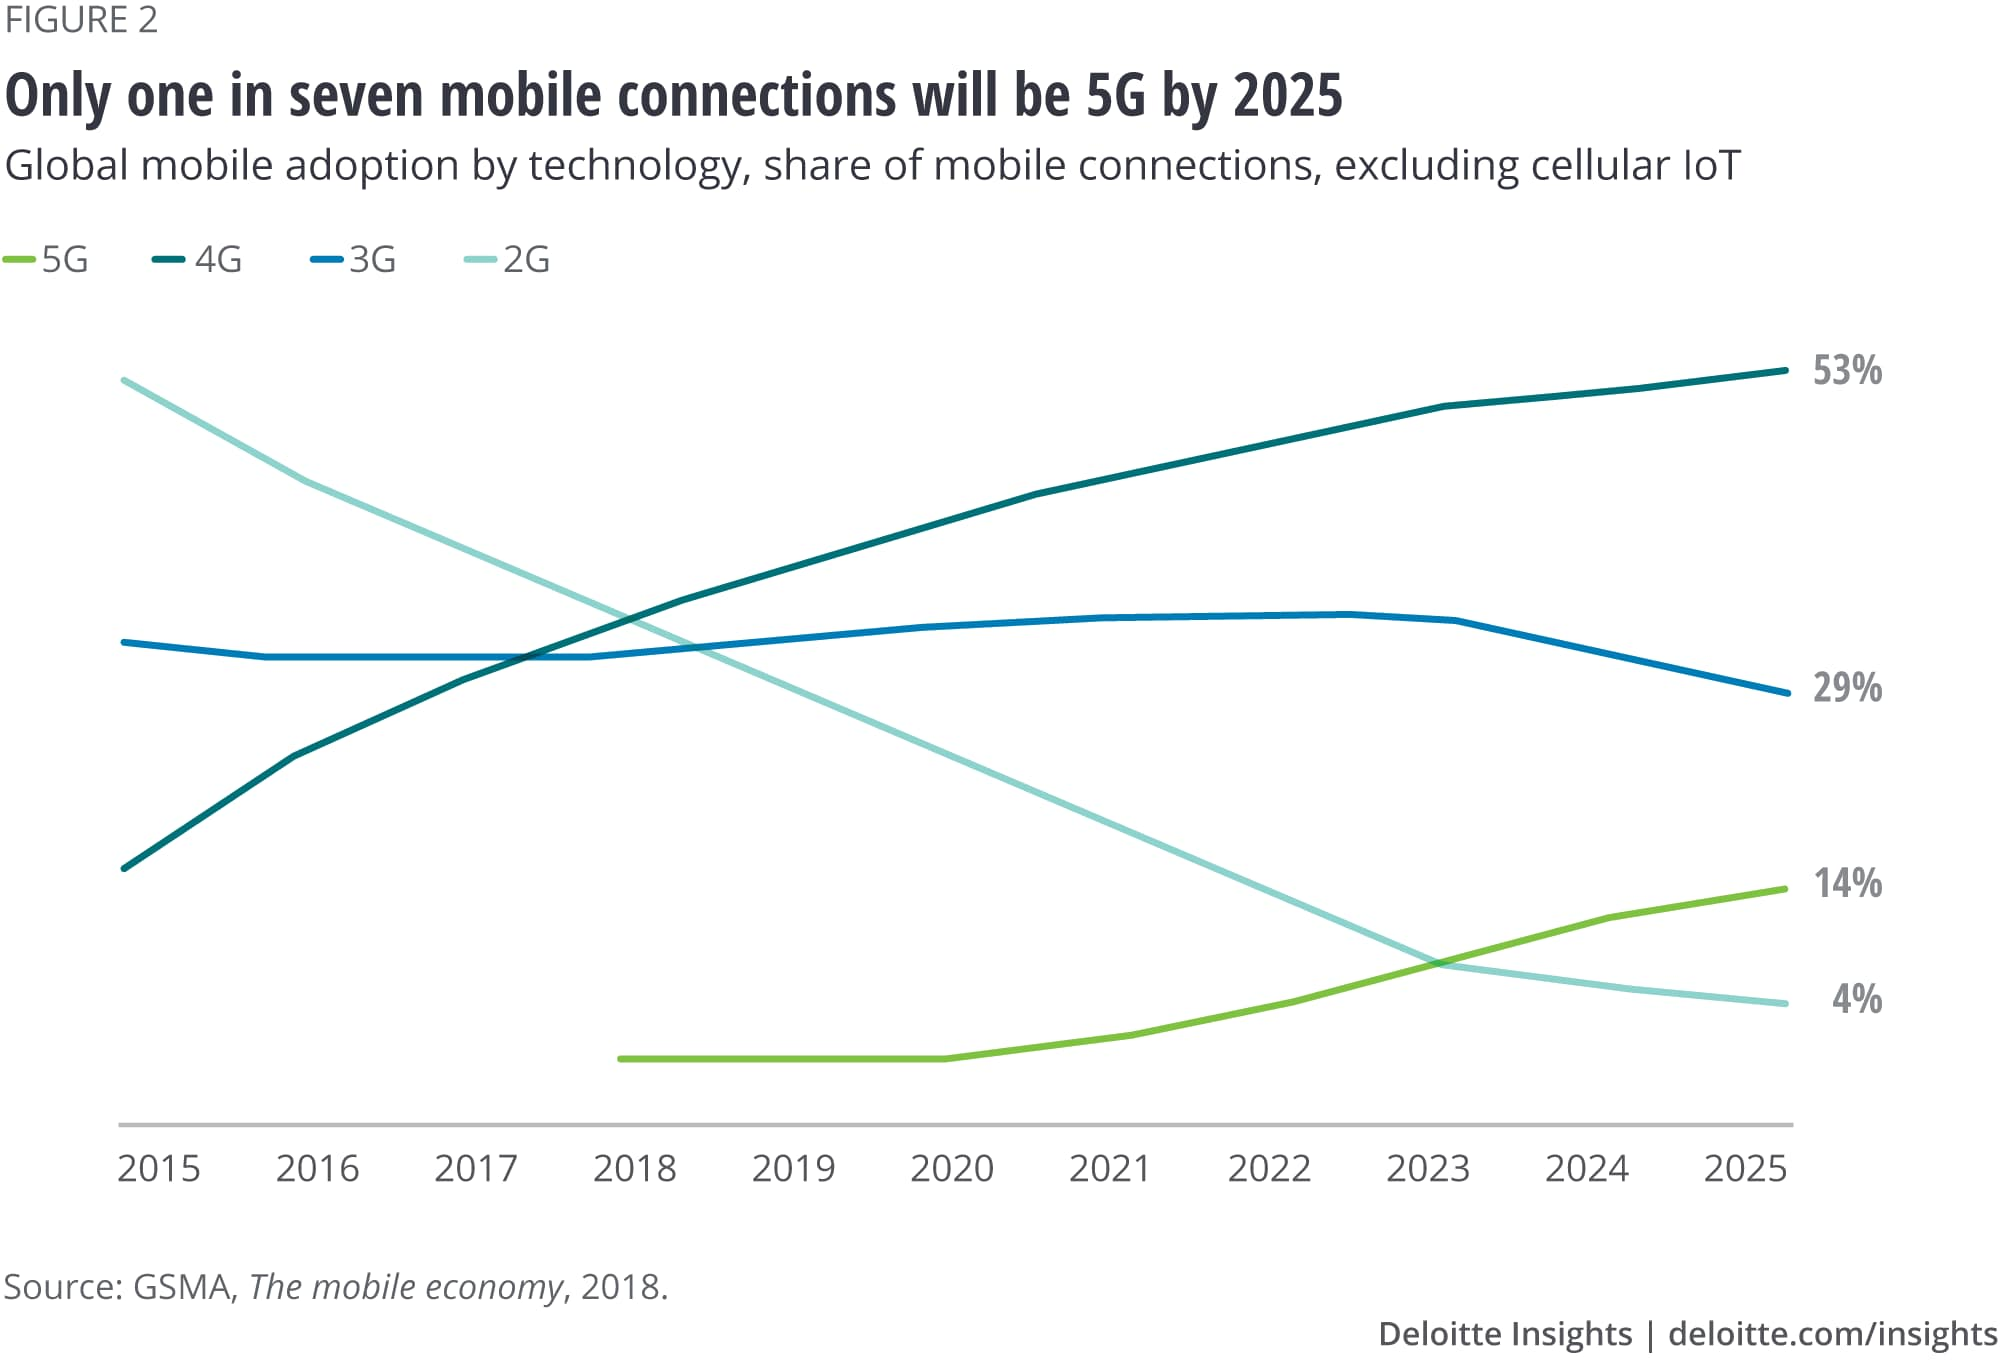 Only one in seven mobile connections will be 5G by 2025